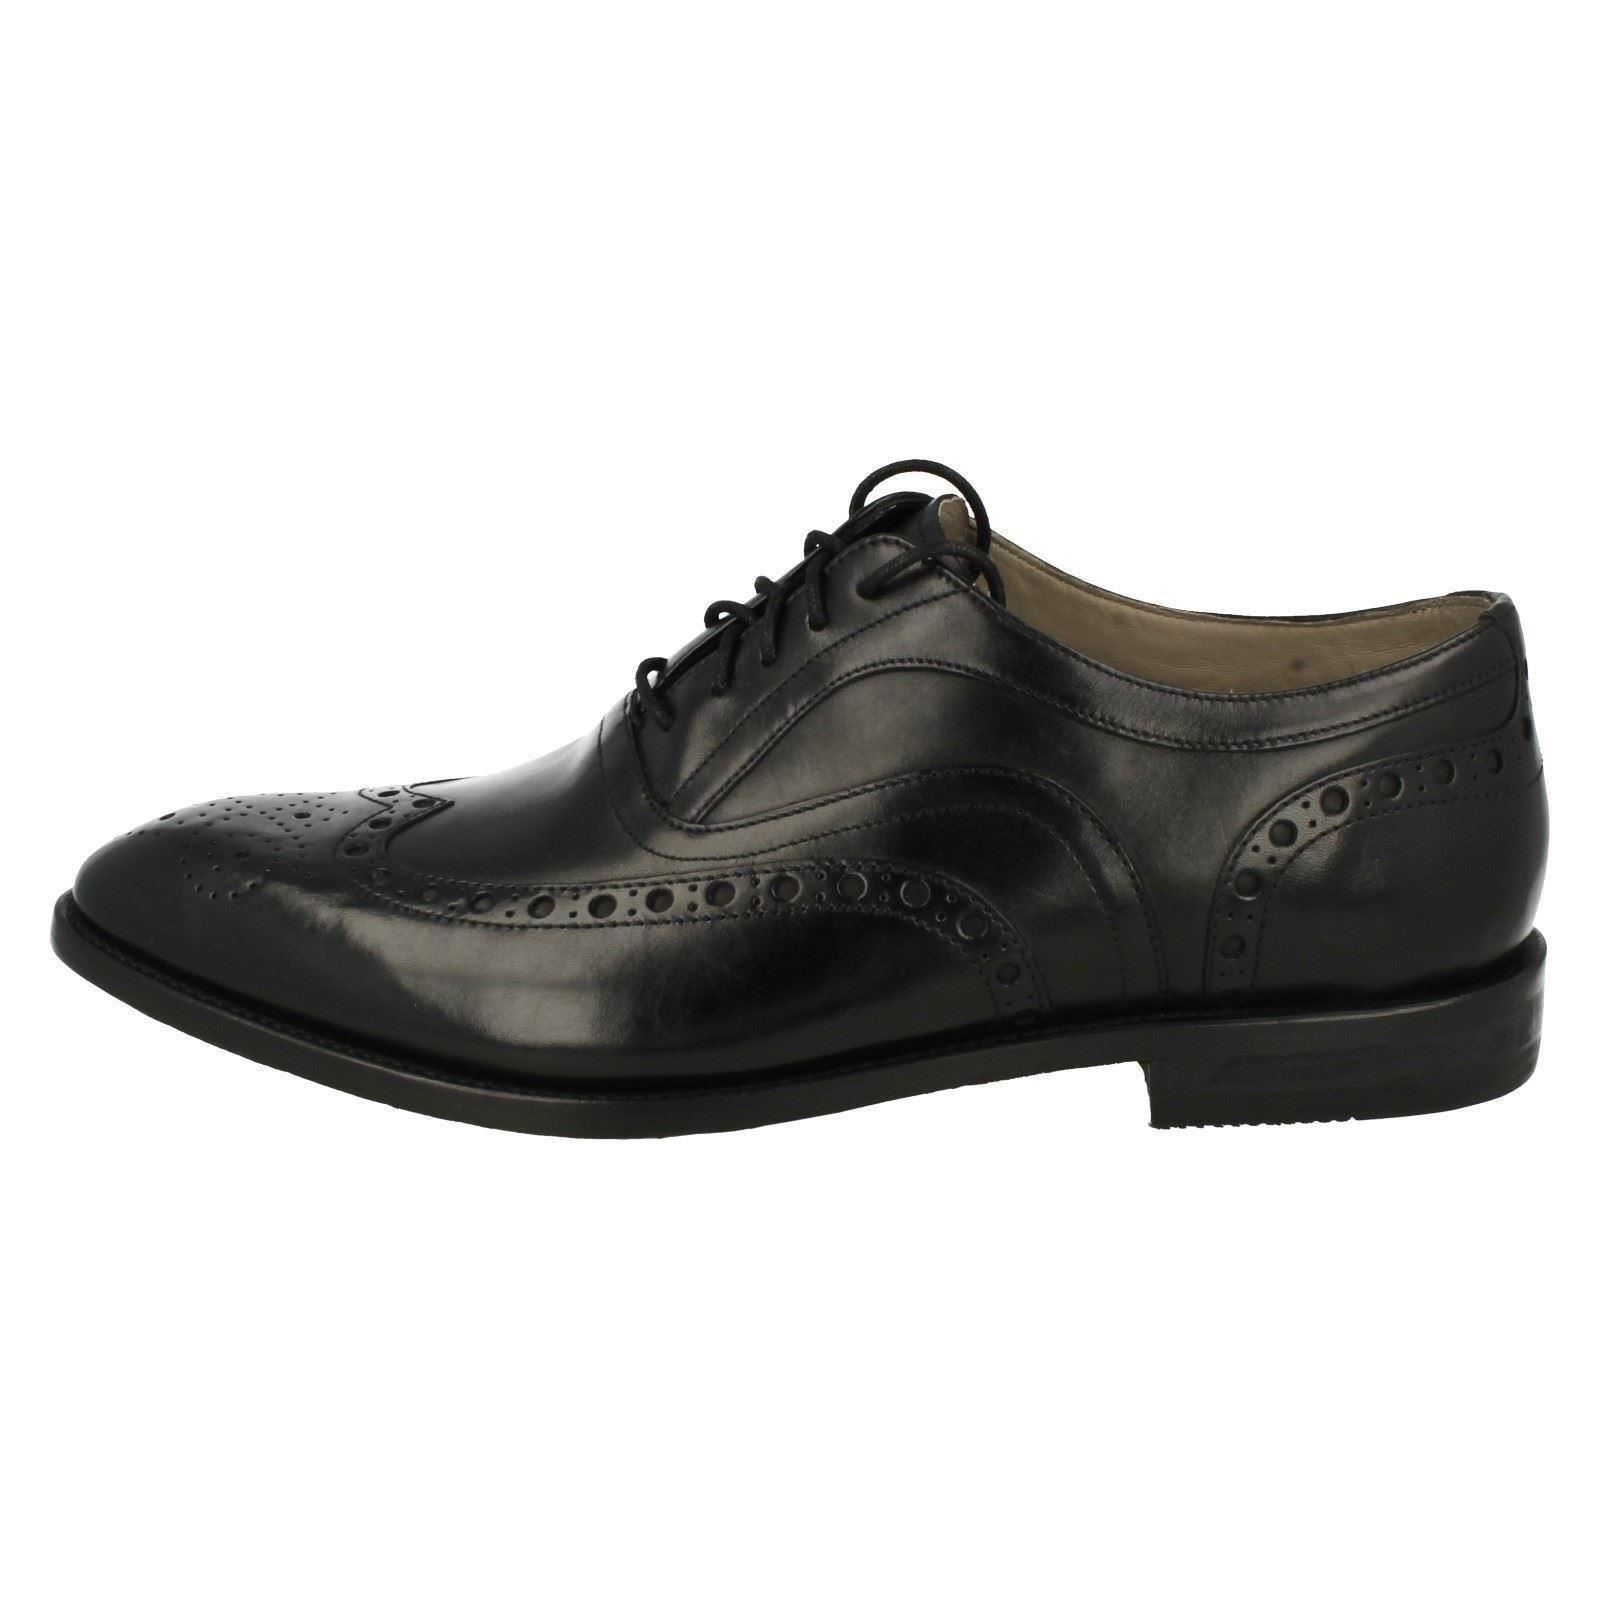 Men's Clarks Formal Lace Up Brogue Schuhes The Style - Twinley Limit